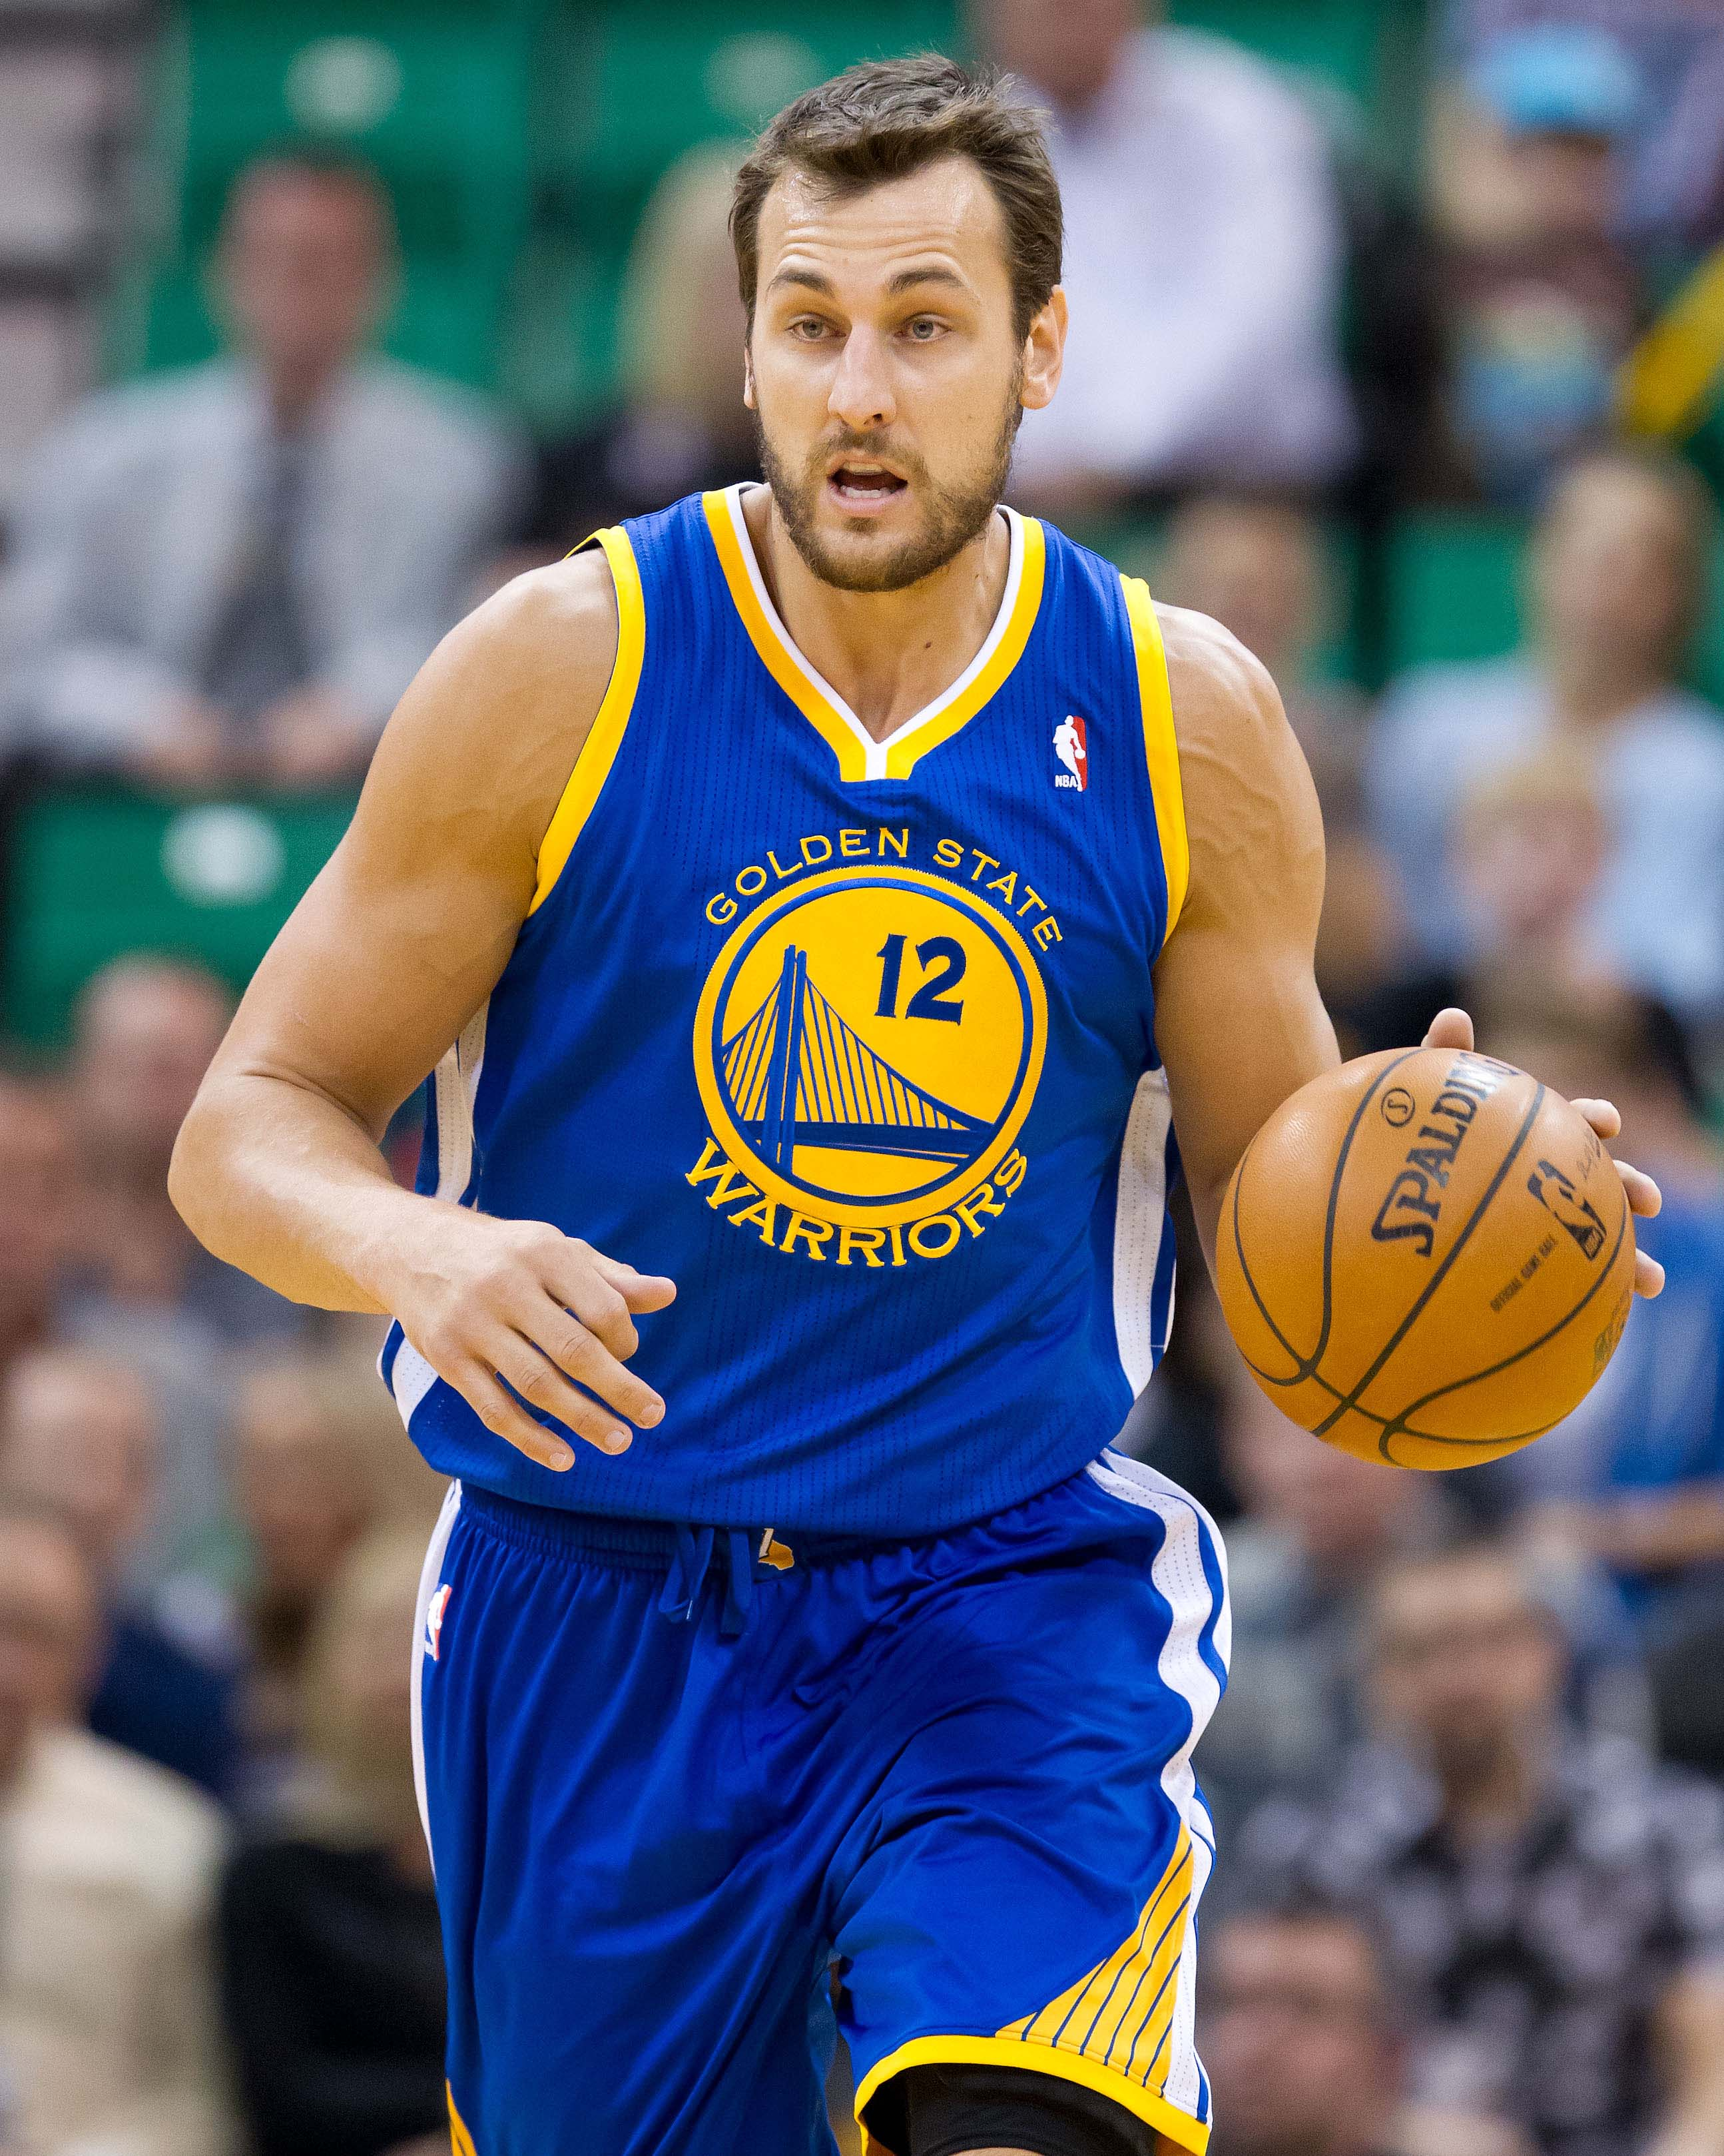 Andrew Bogut was traded to the Warriors midway through the 2011-12 season. (USA Today)